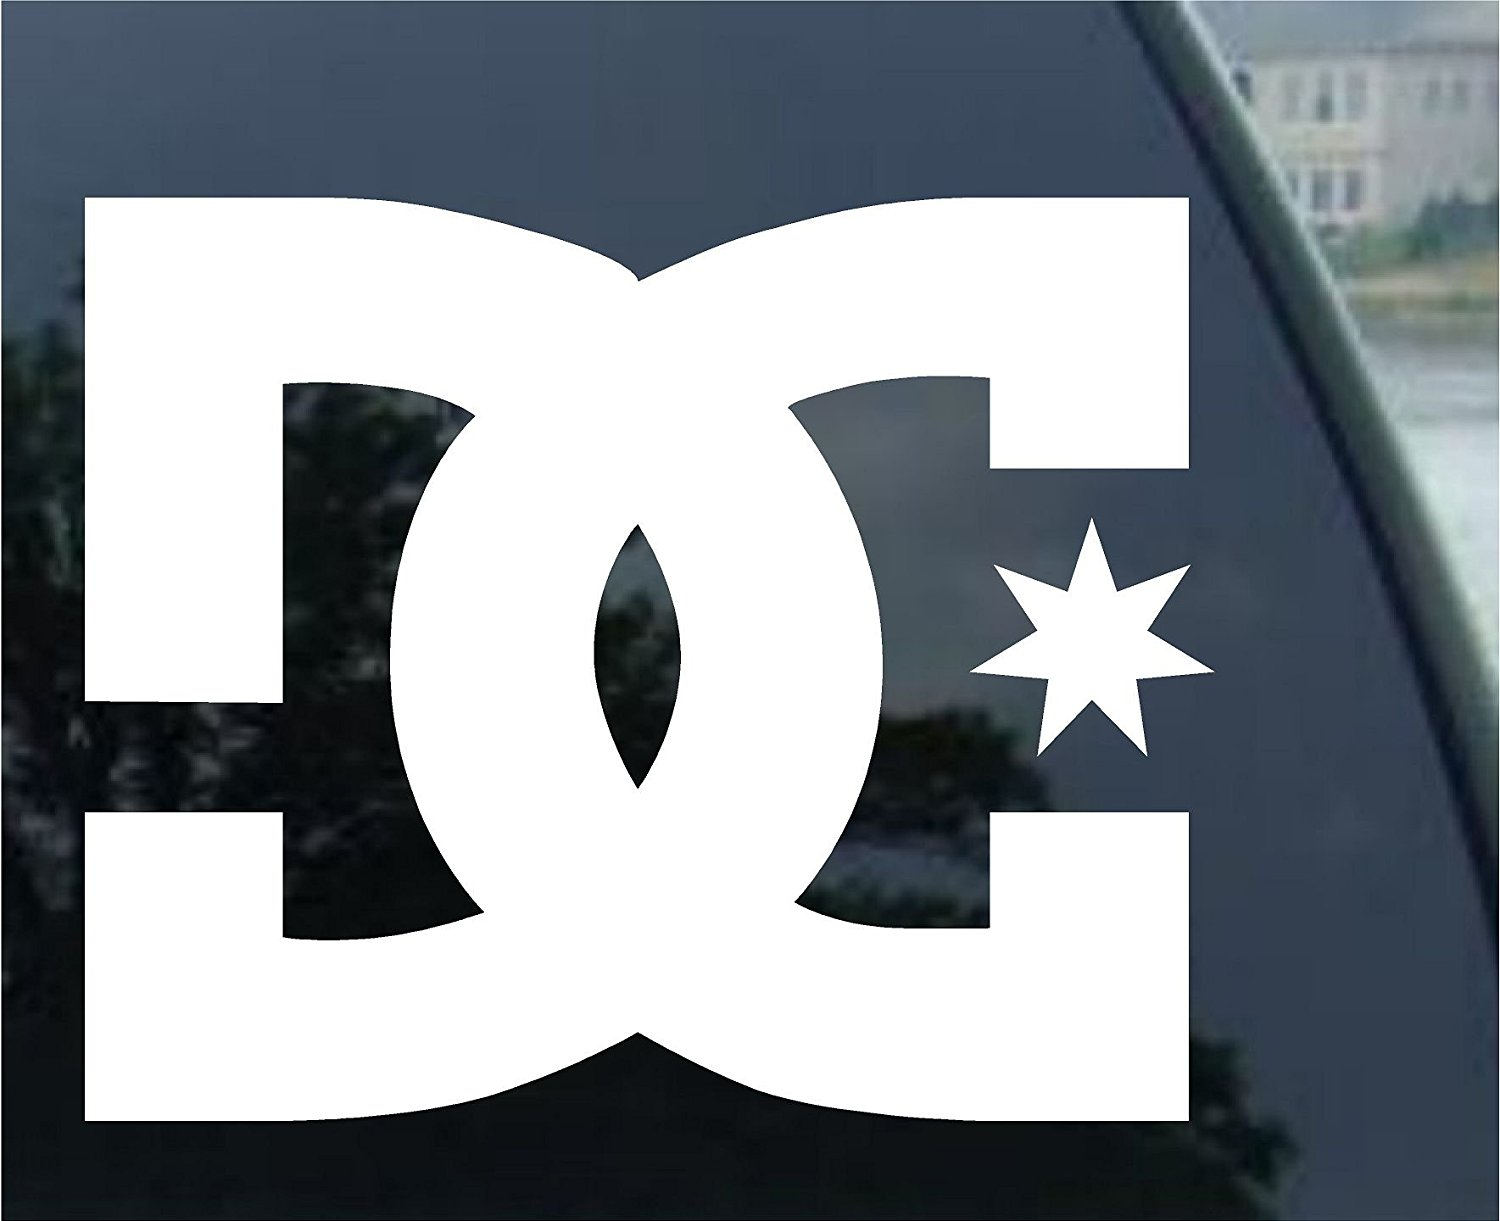 c15c536cd5 Get Quotations · DC SHOES, SKATEBOARDS Vinyl Sticker/Decal (5.5